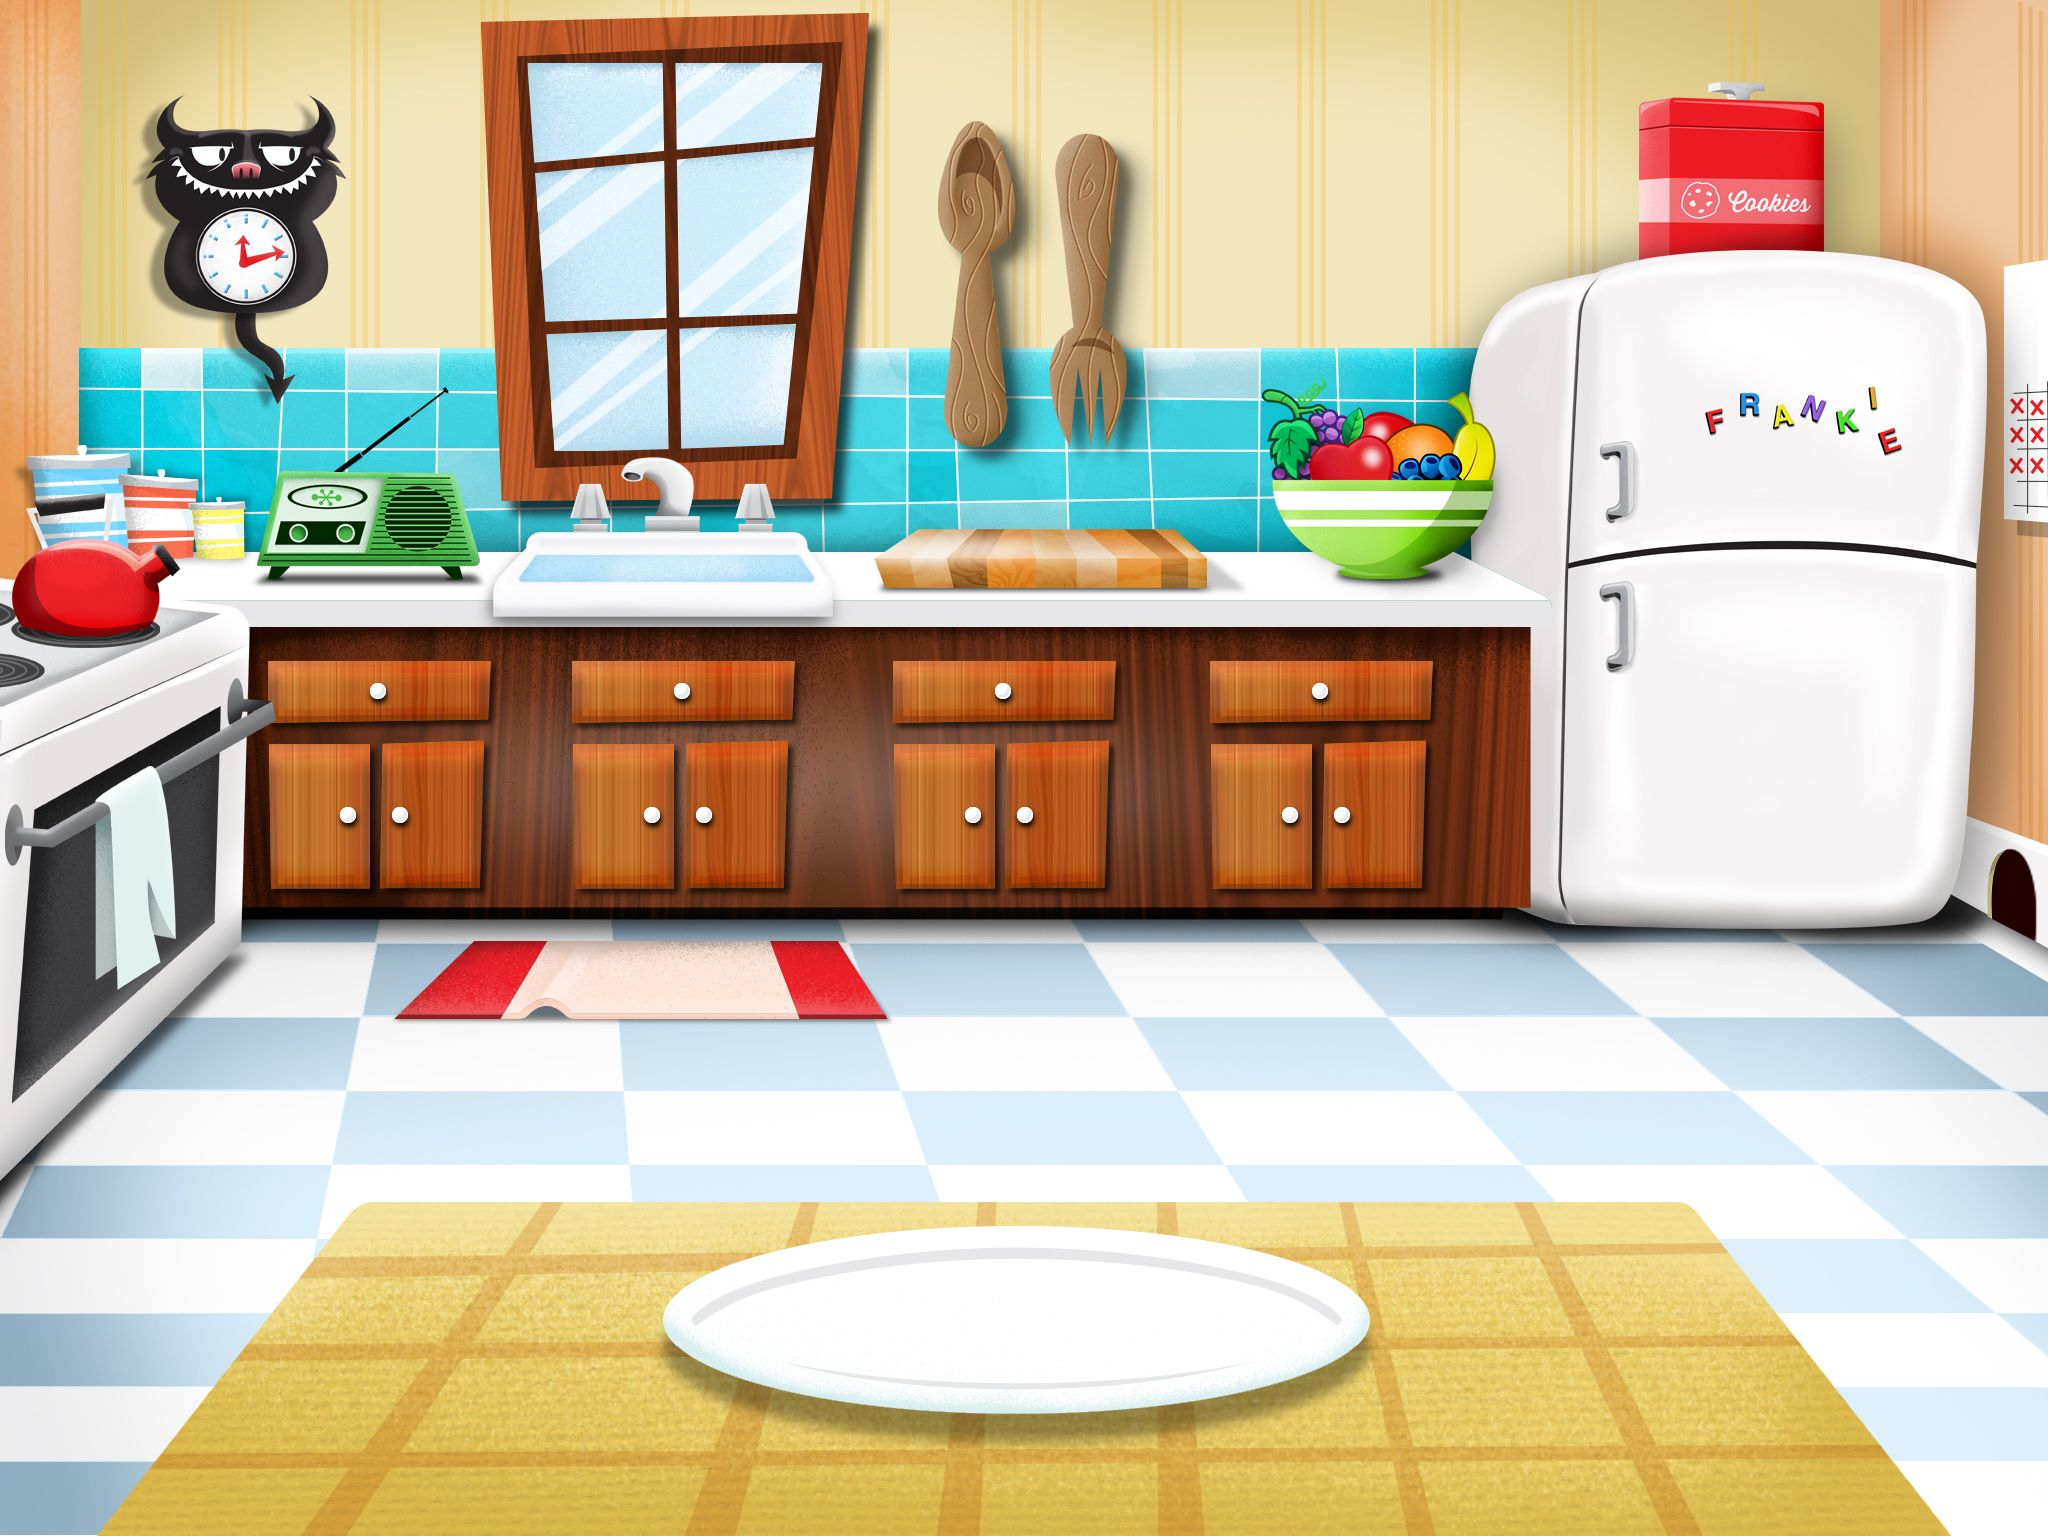 Environment Design Kitchen Scene For Ipad Game Feed Frankie Kitchen Design Kitchen Home Decor